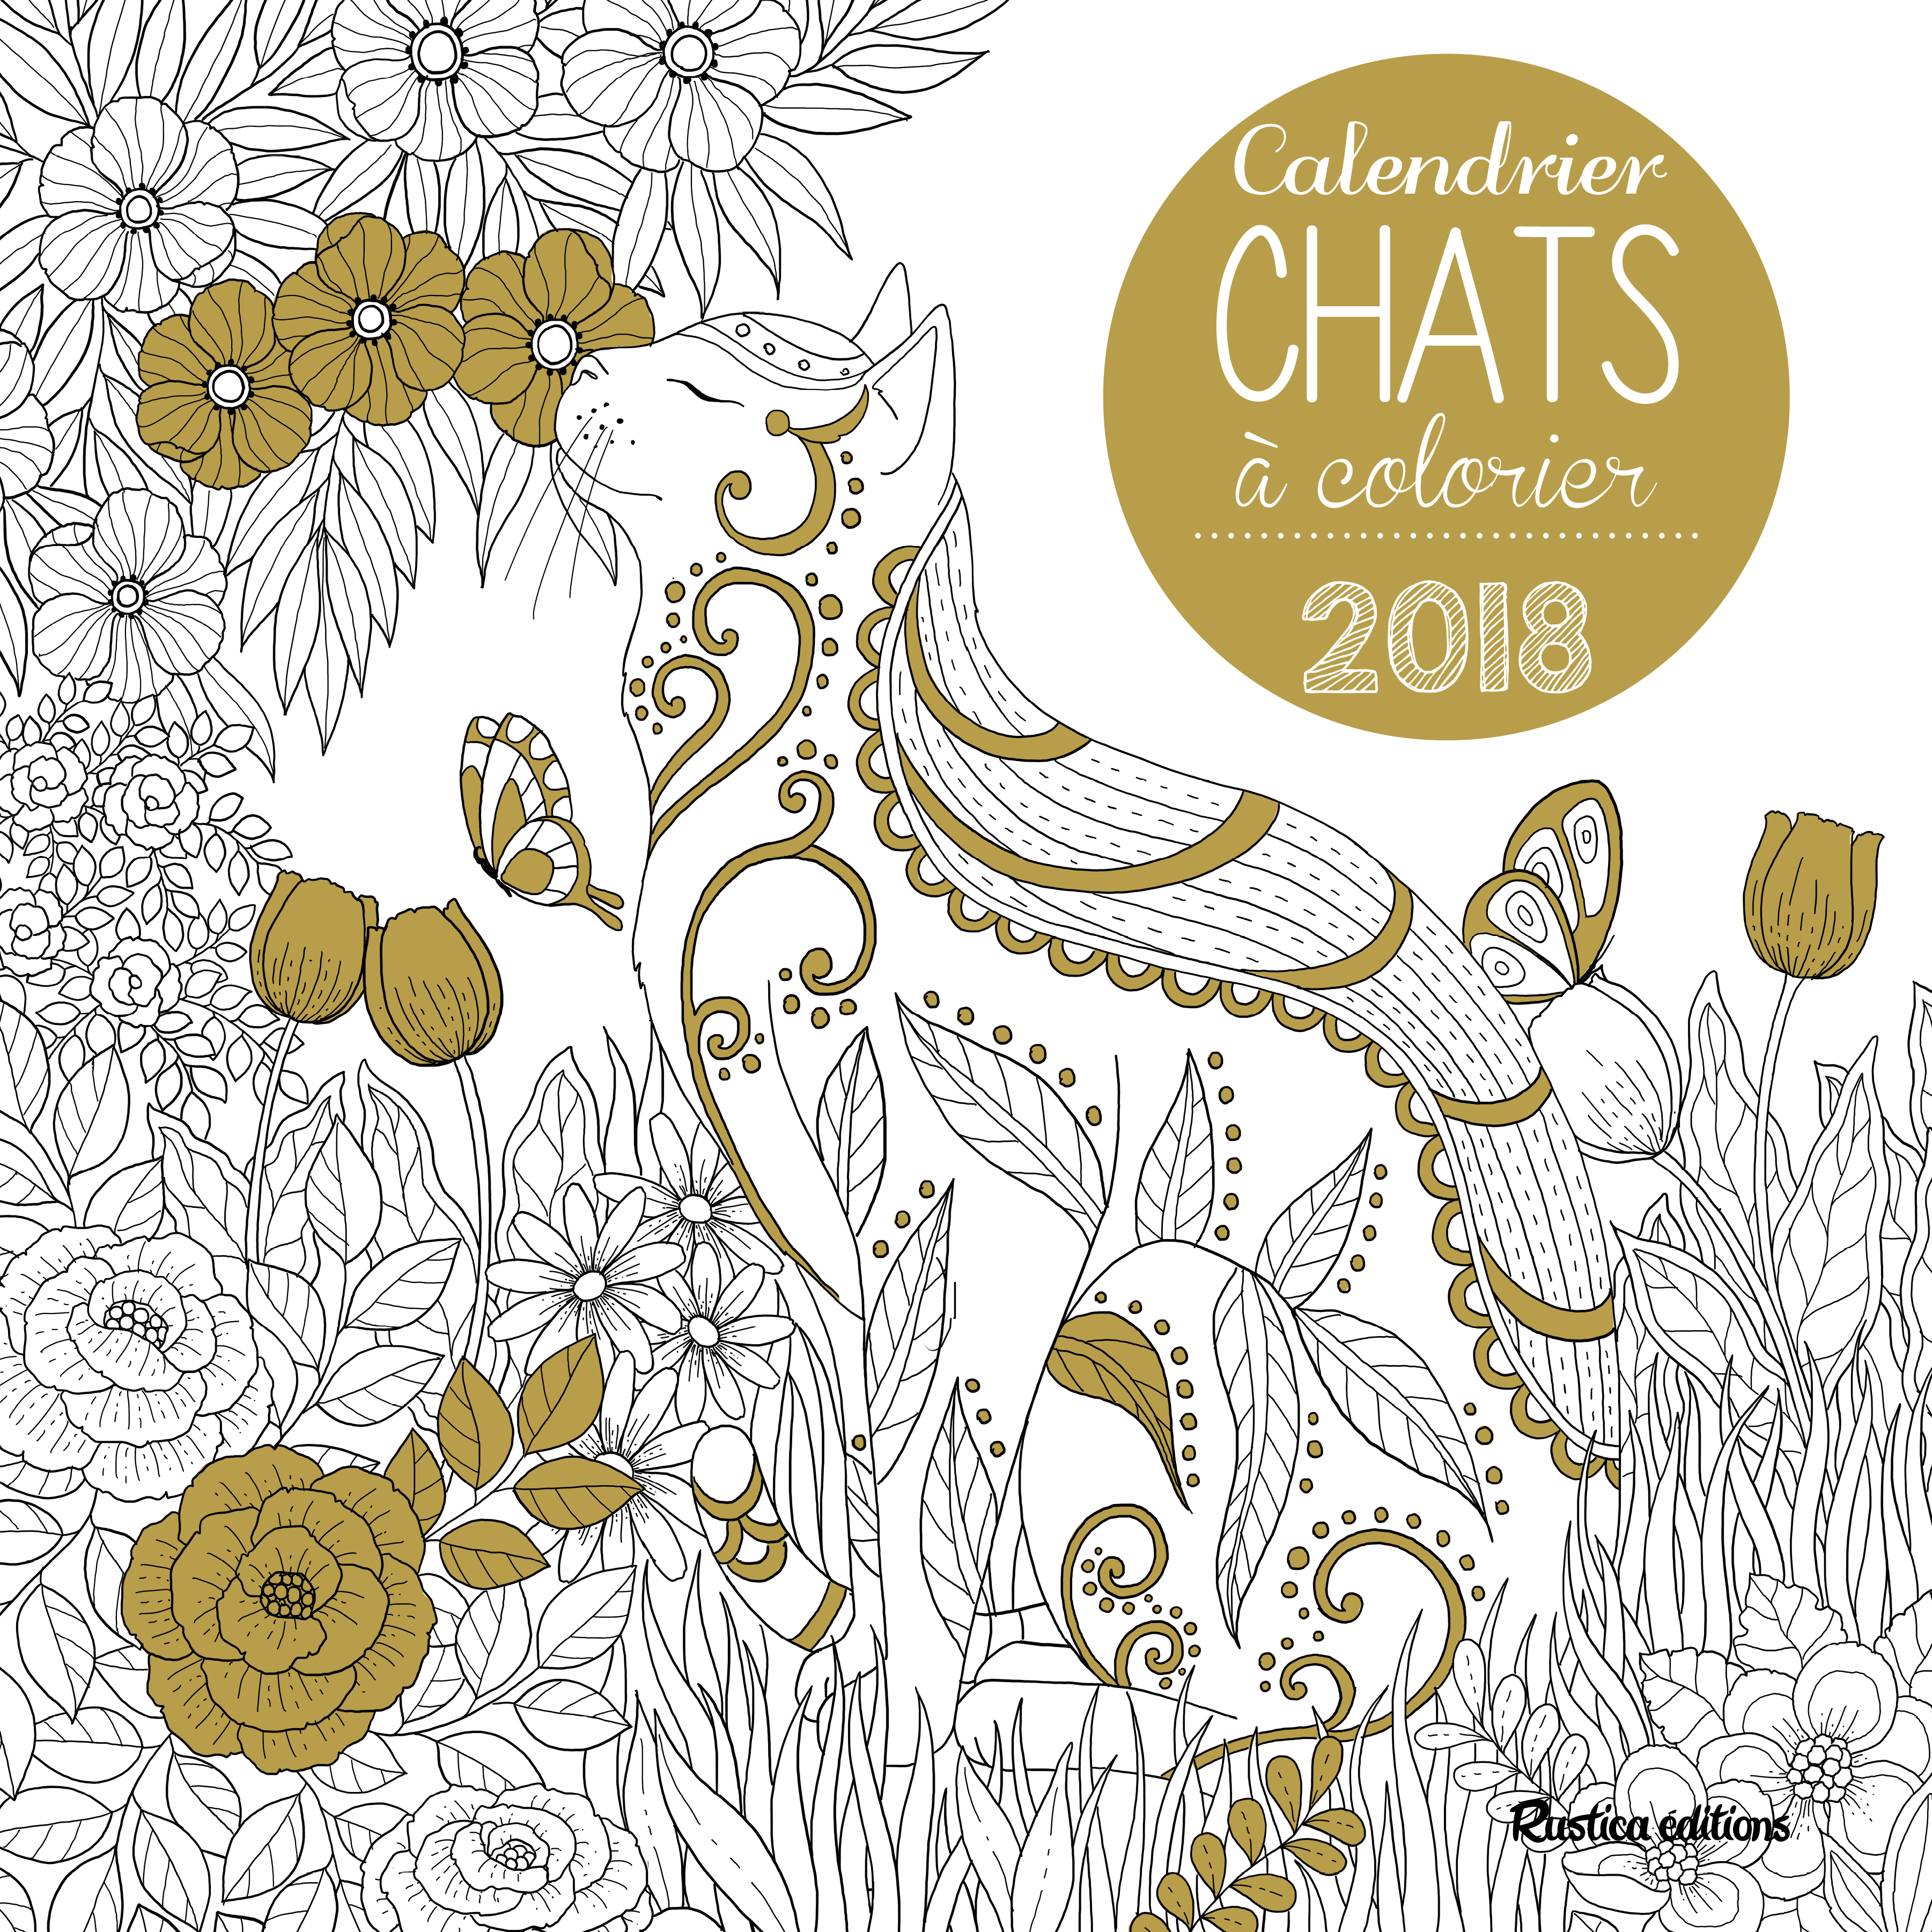 CALENDRIER CHATS A COLORIER 2018